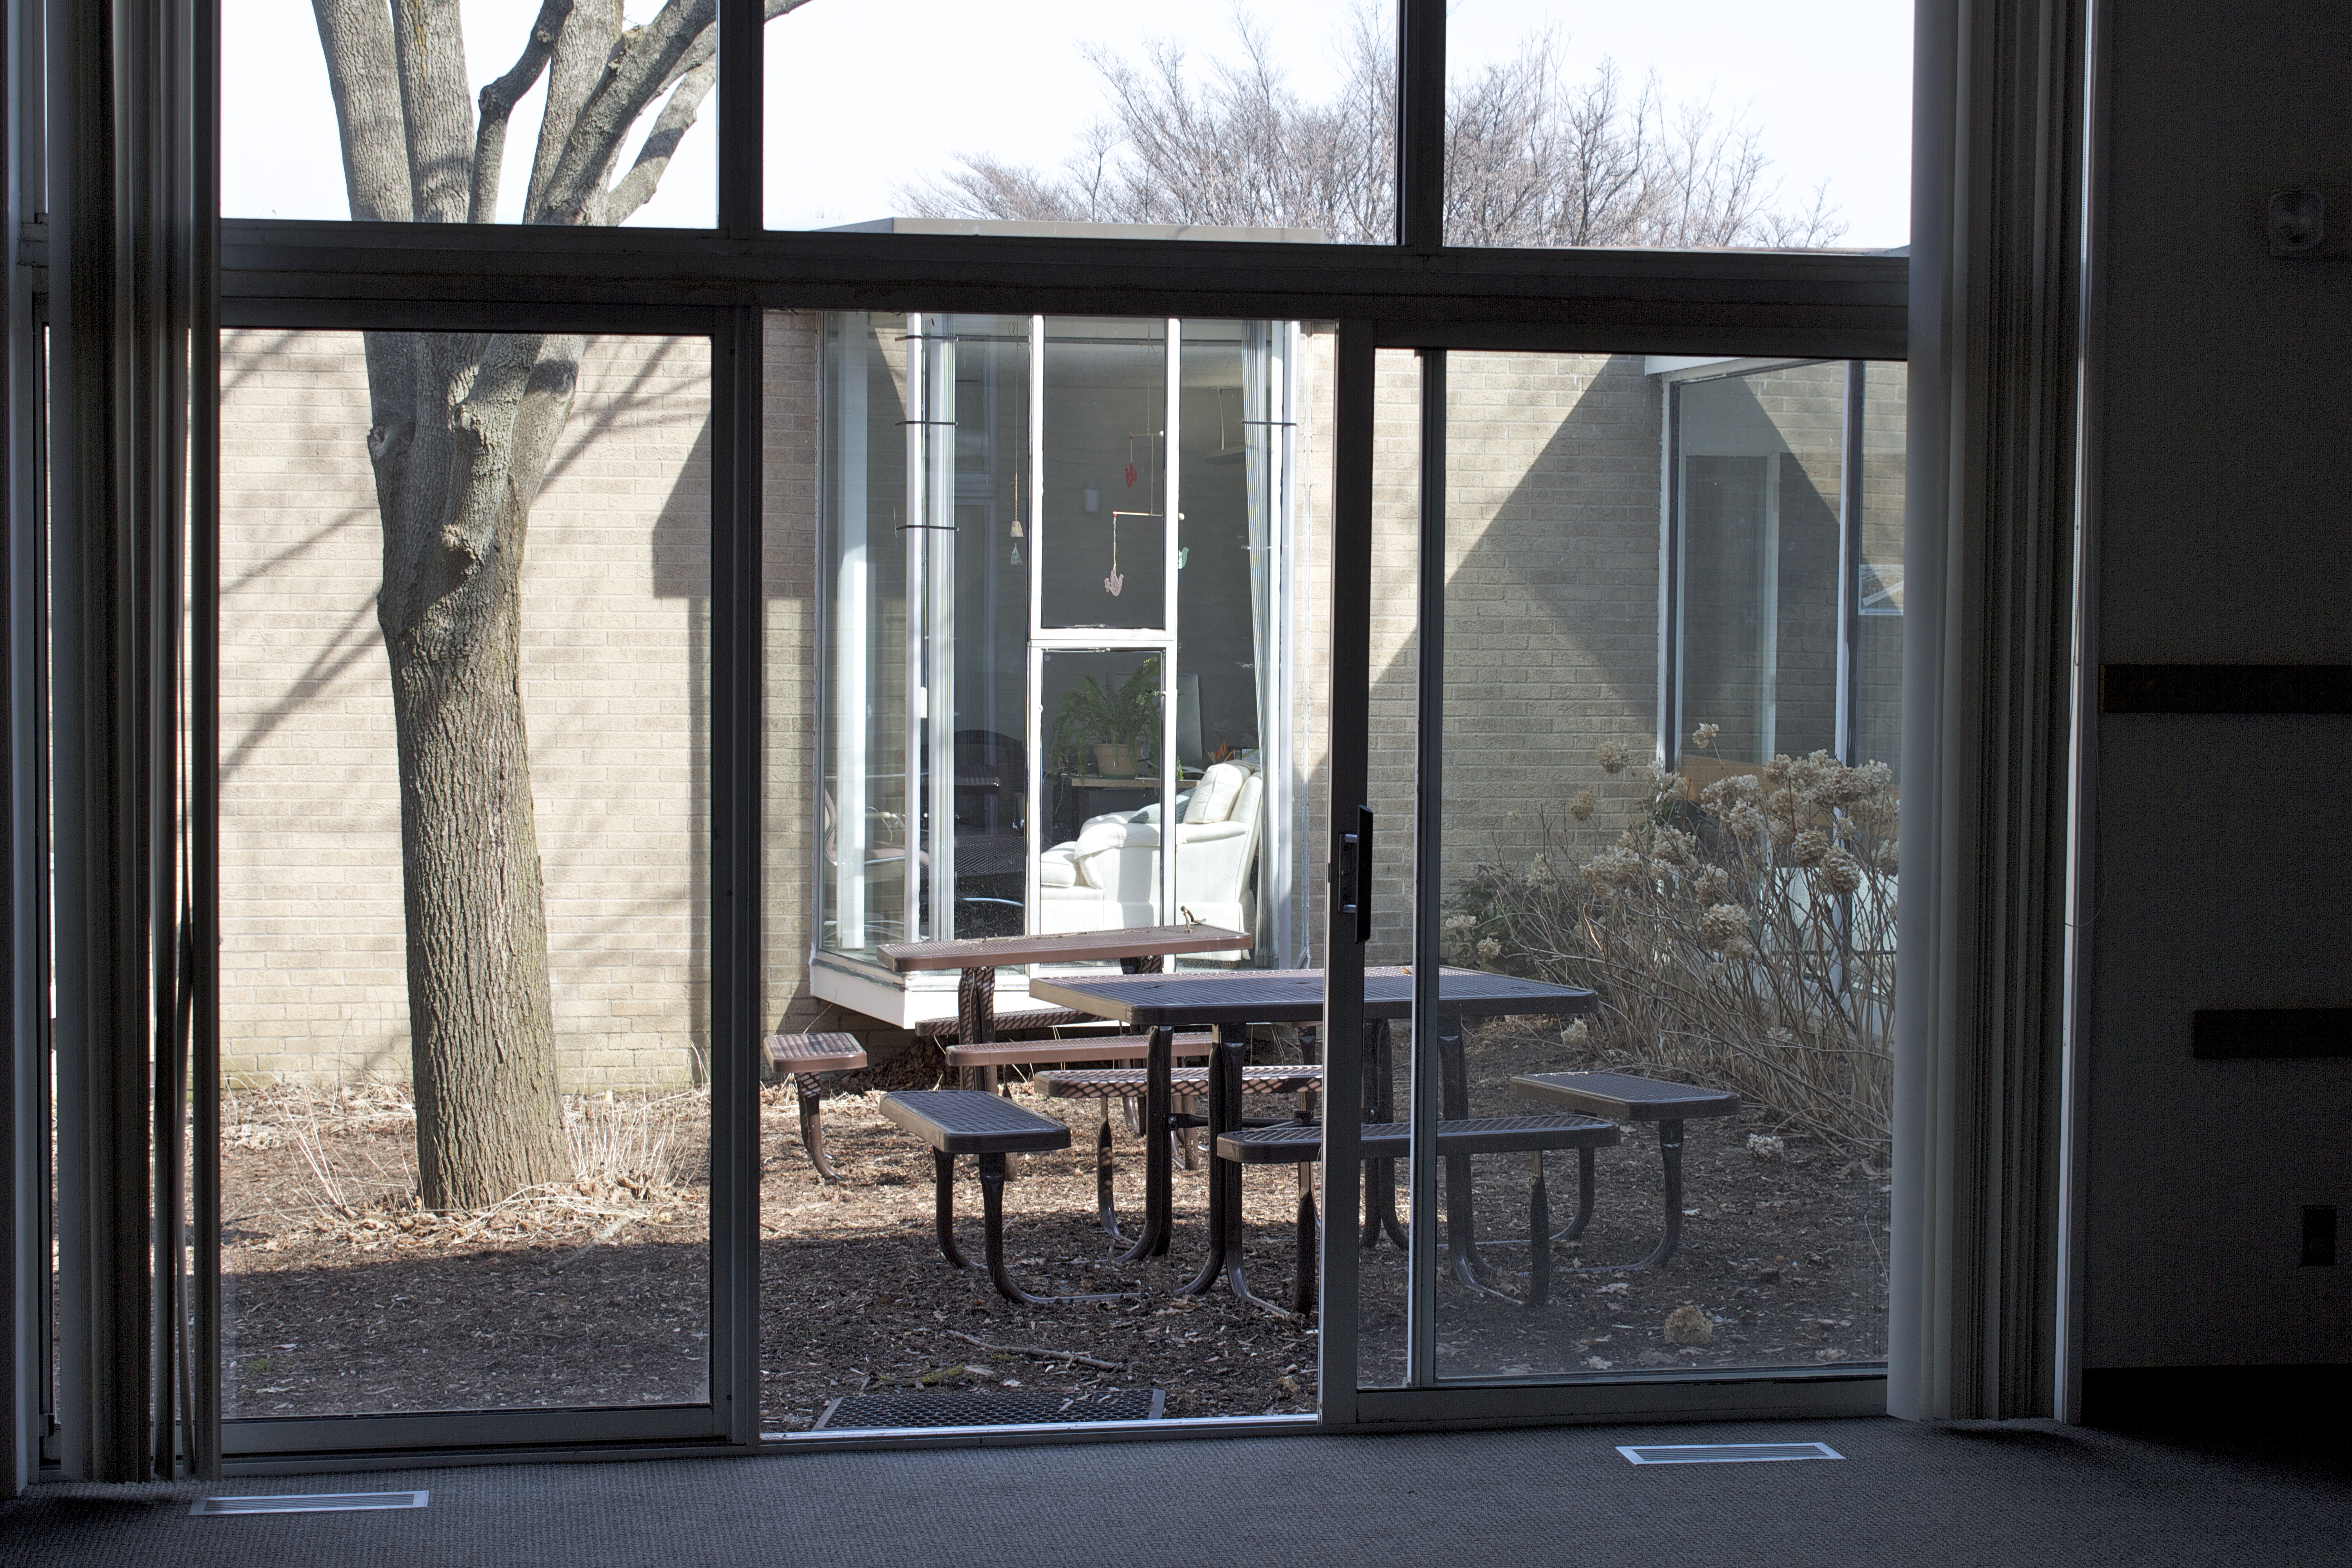 Commons out through sliding glass